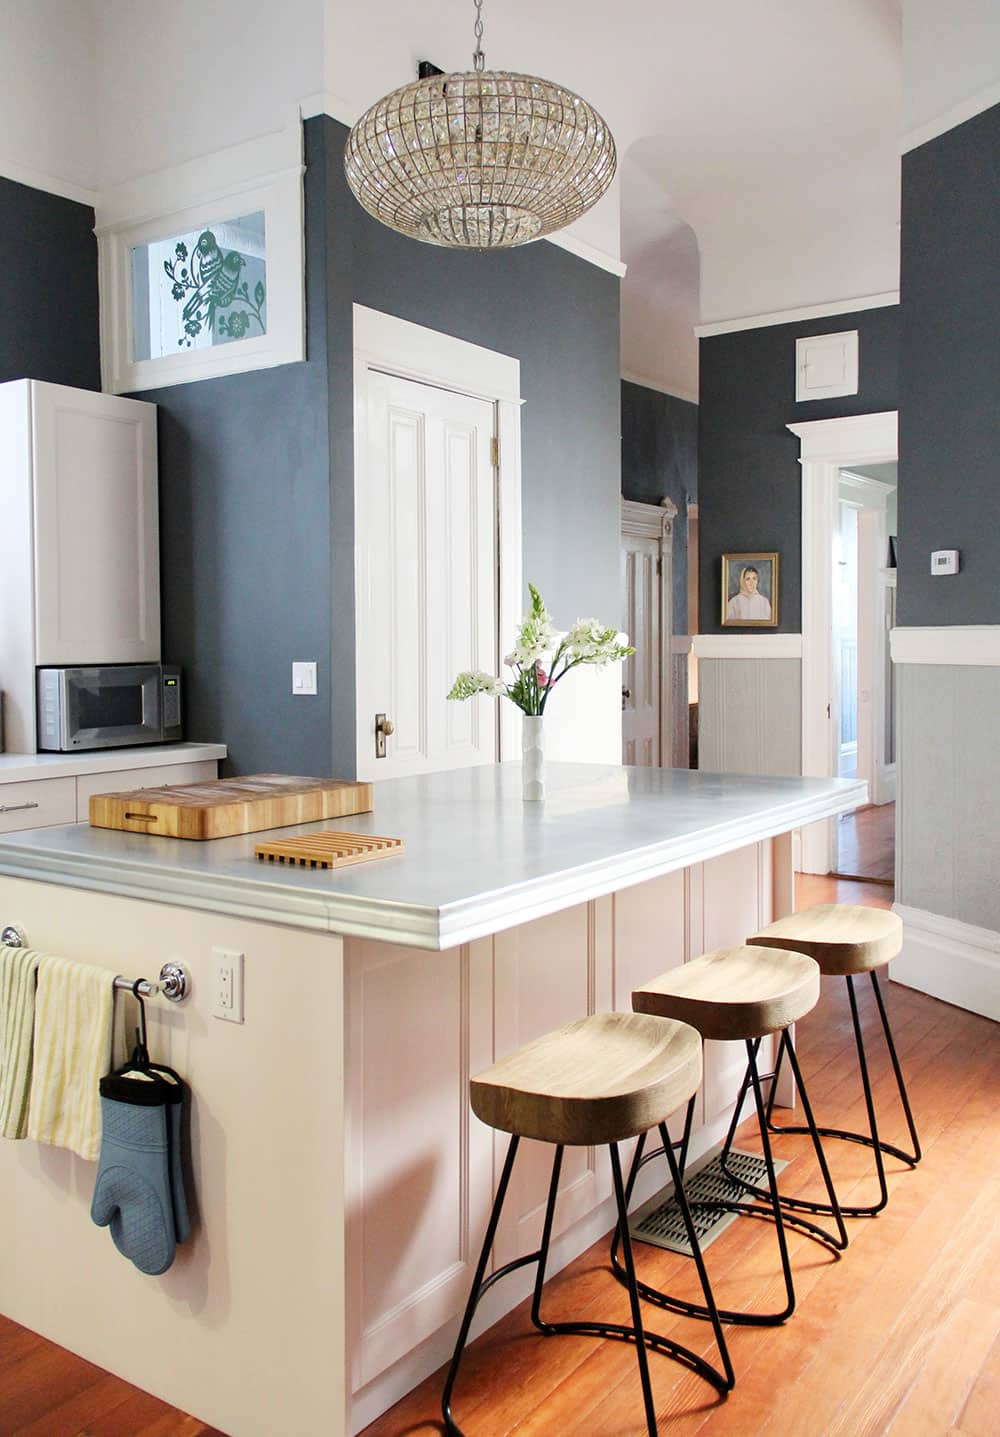 20 Paint Colors We Love in the Kitchen: gallery image 9